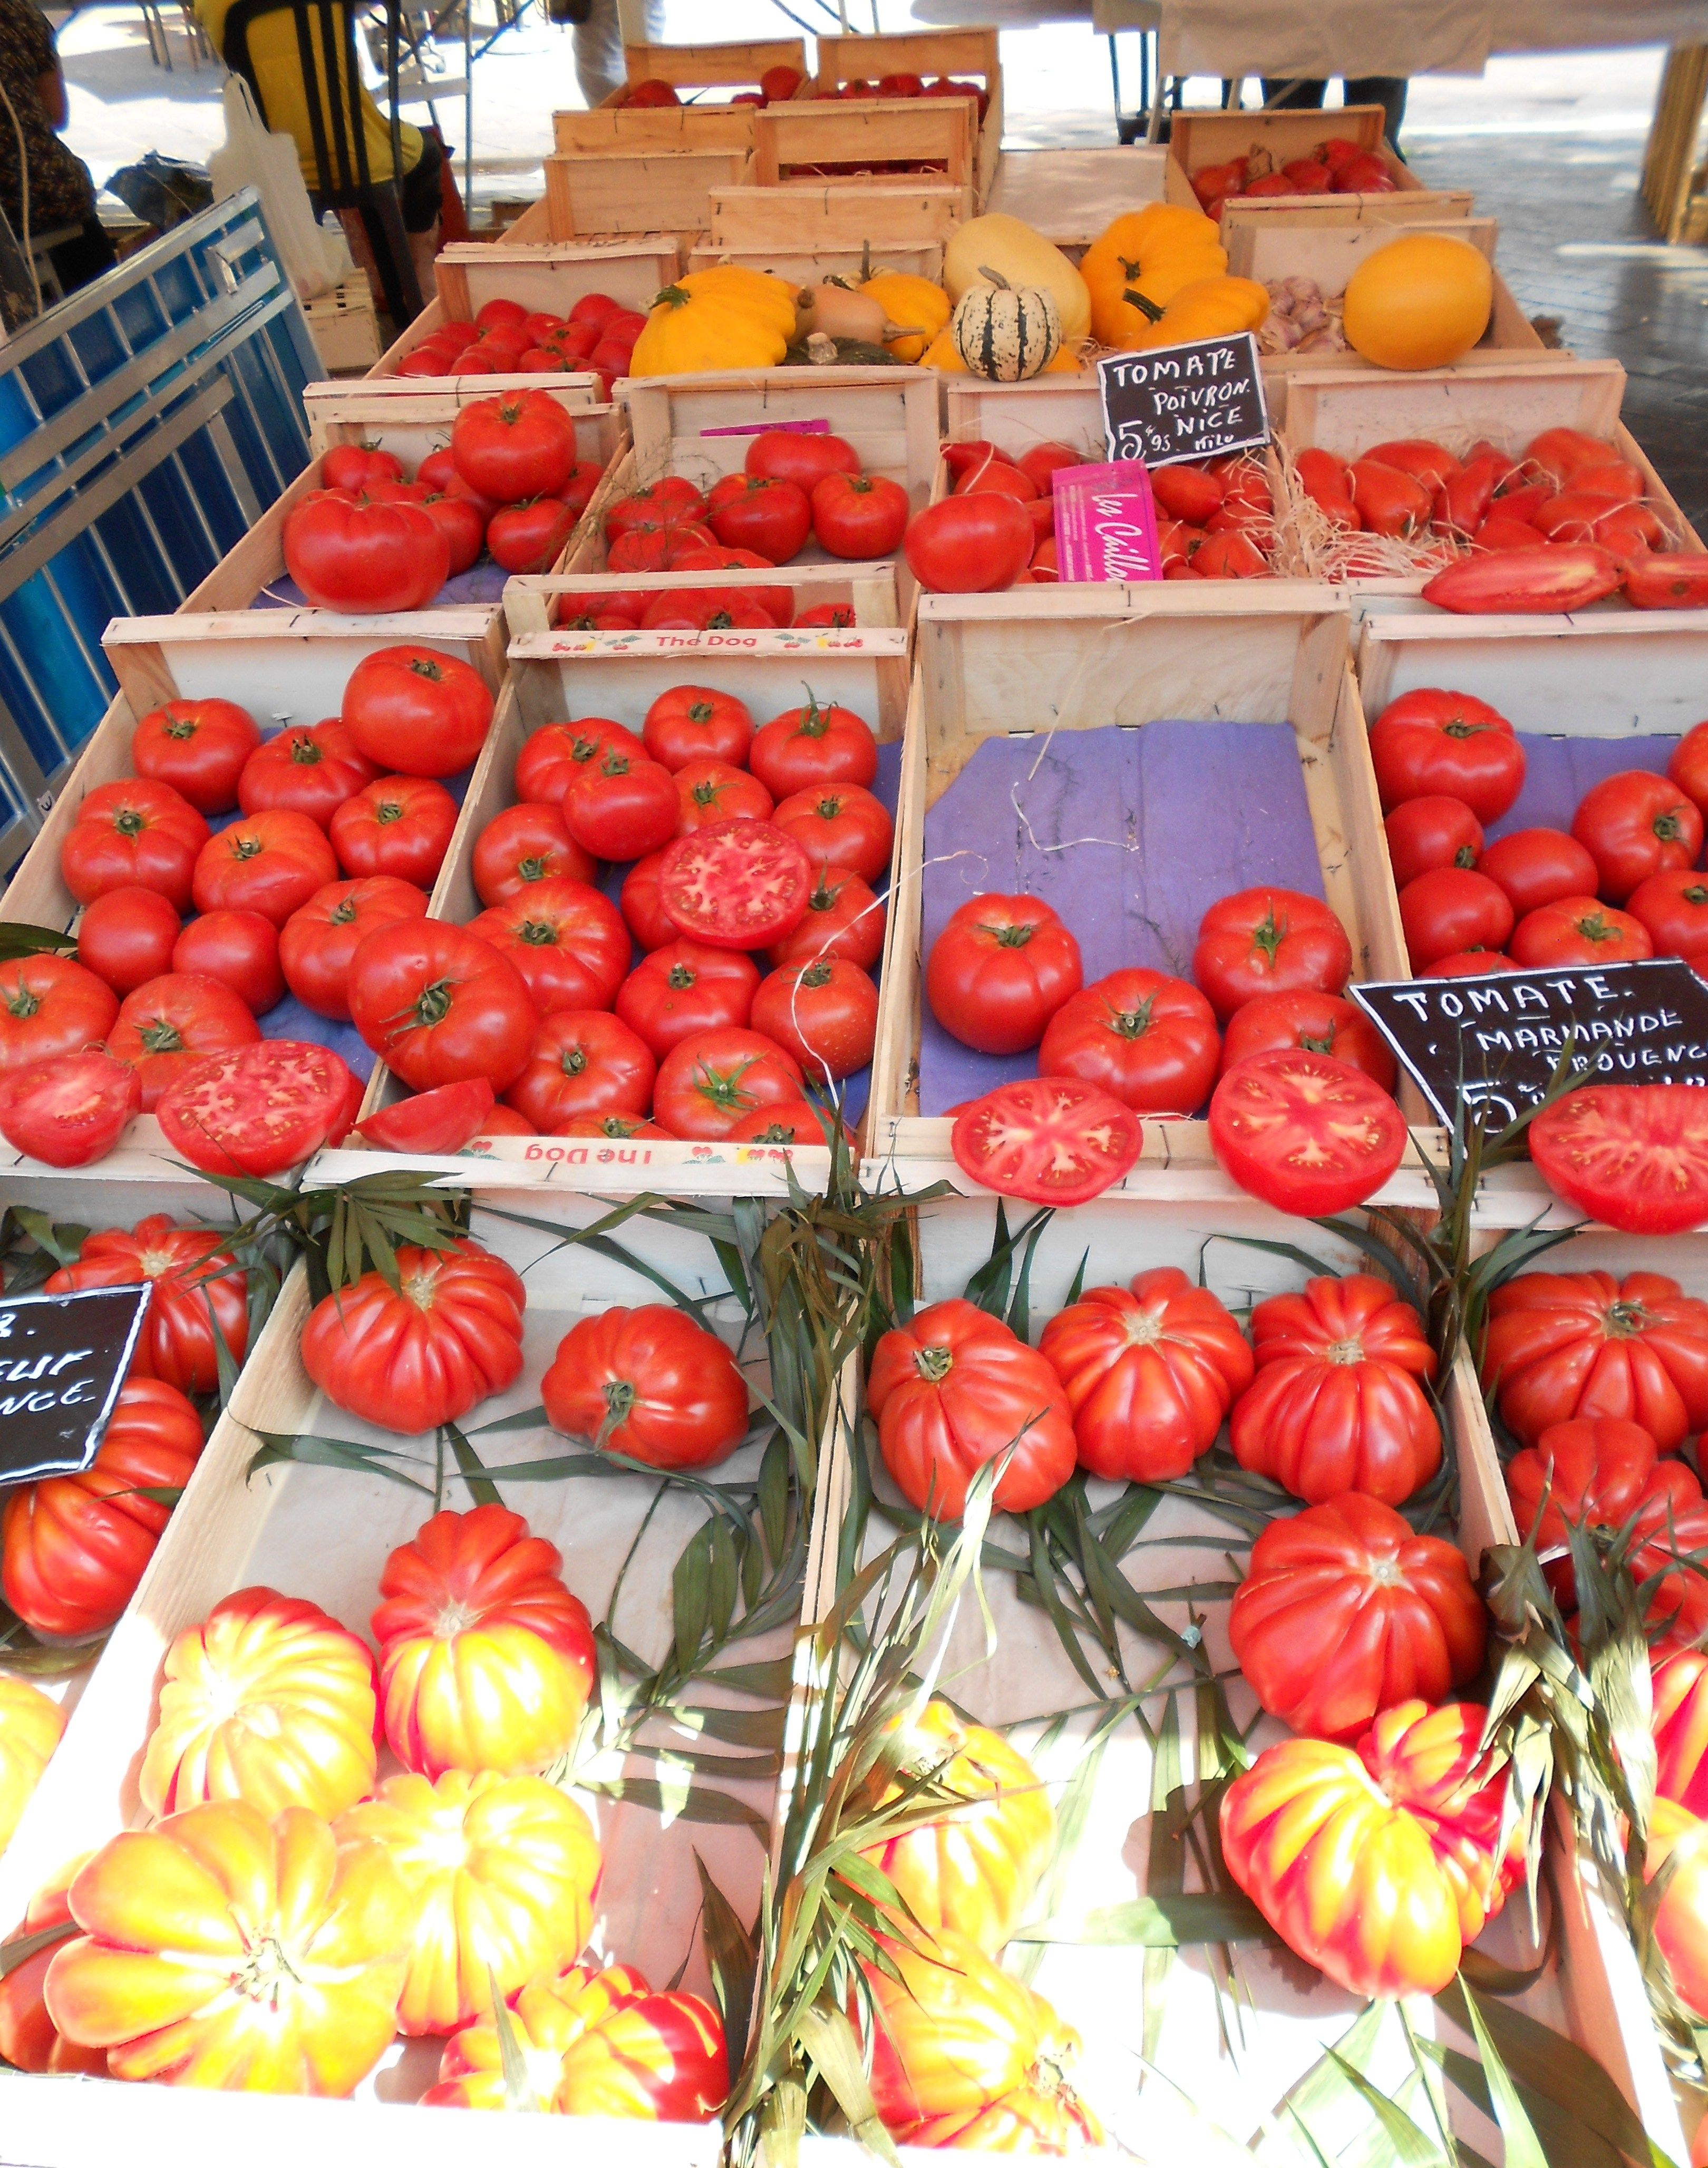 Shopping at the local market in Nice, France.